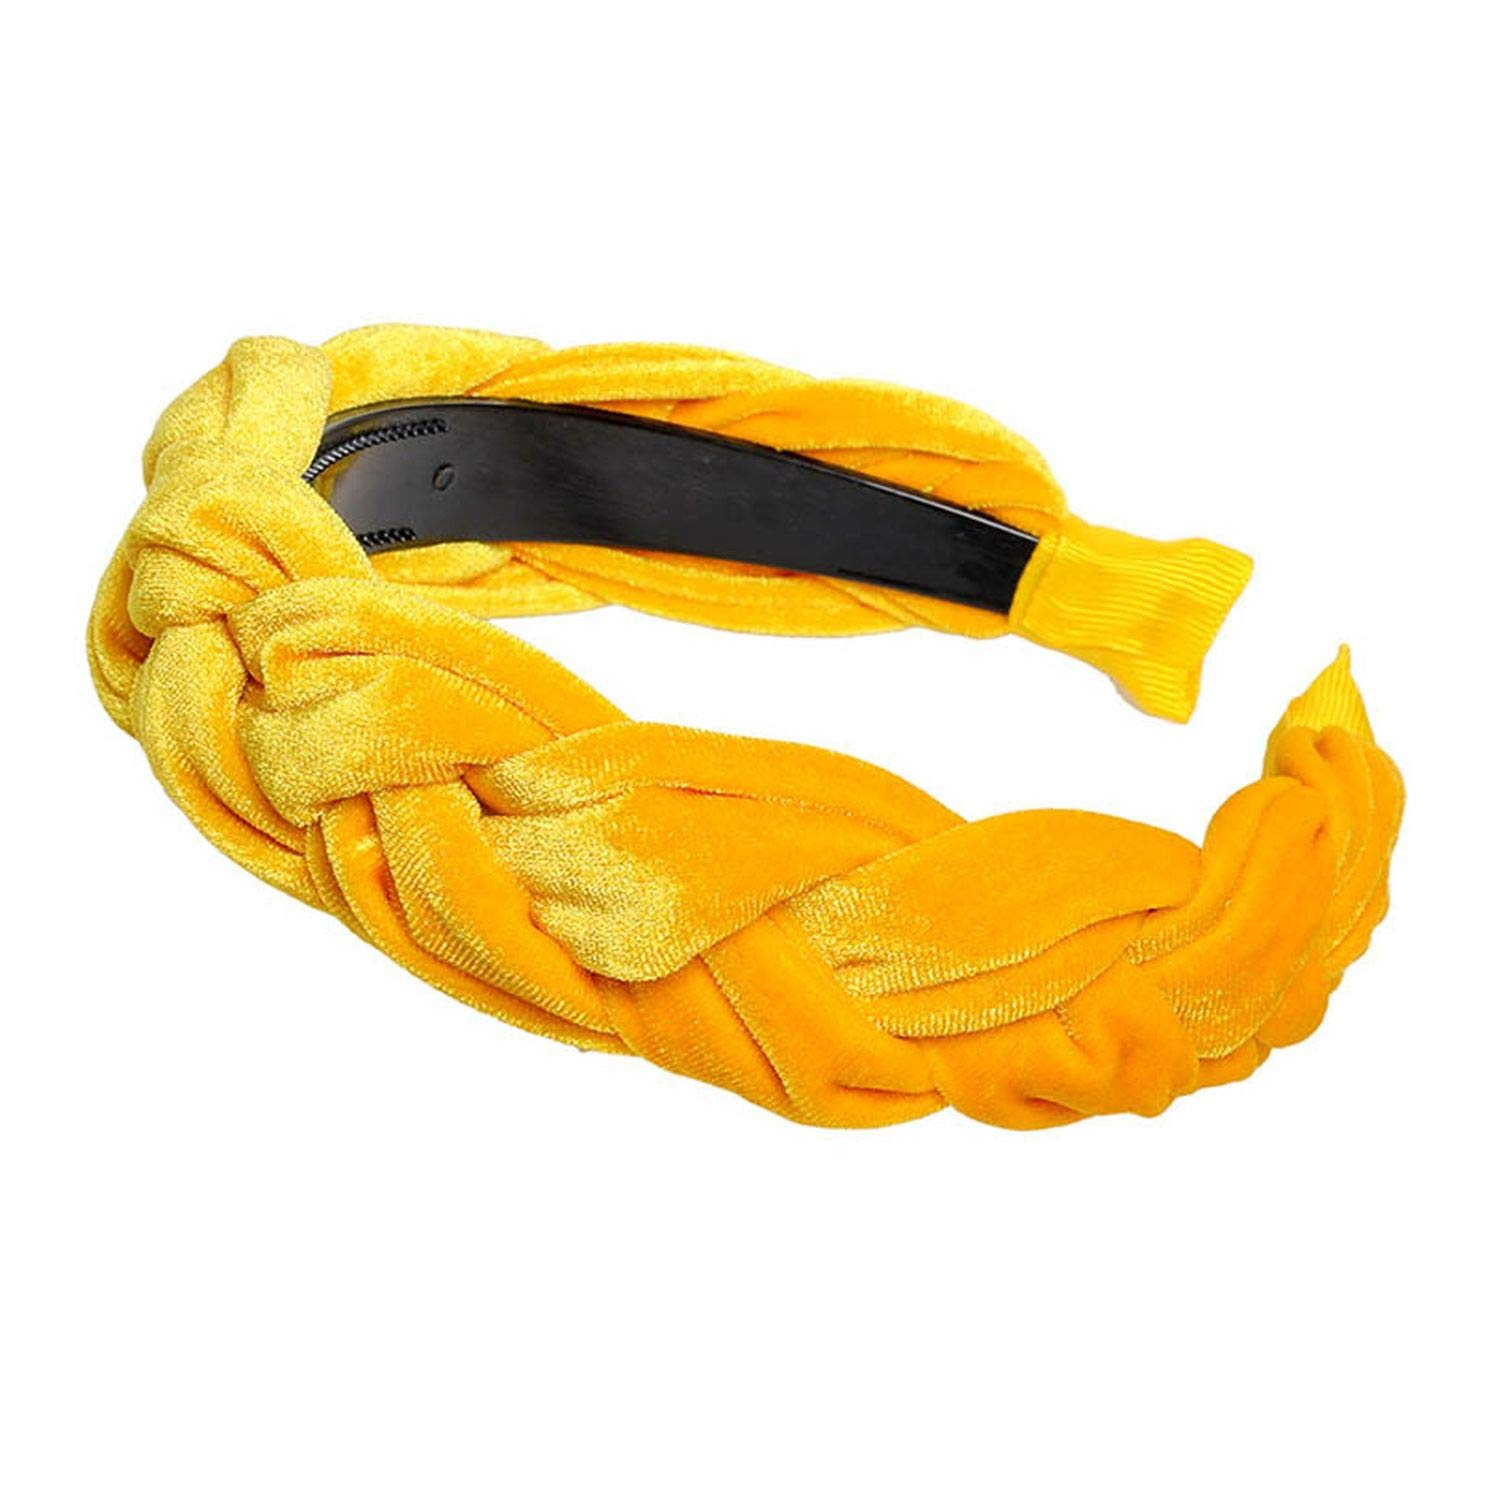 2019 New Velvet Hairband For Women Ladies Headband Solid Color Braid Hair Loop Retro Headwear Female Hair Accessories,Yellow